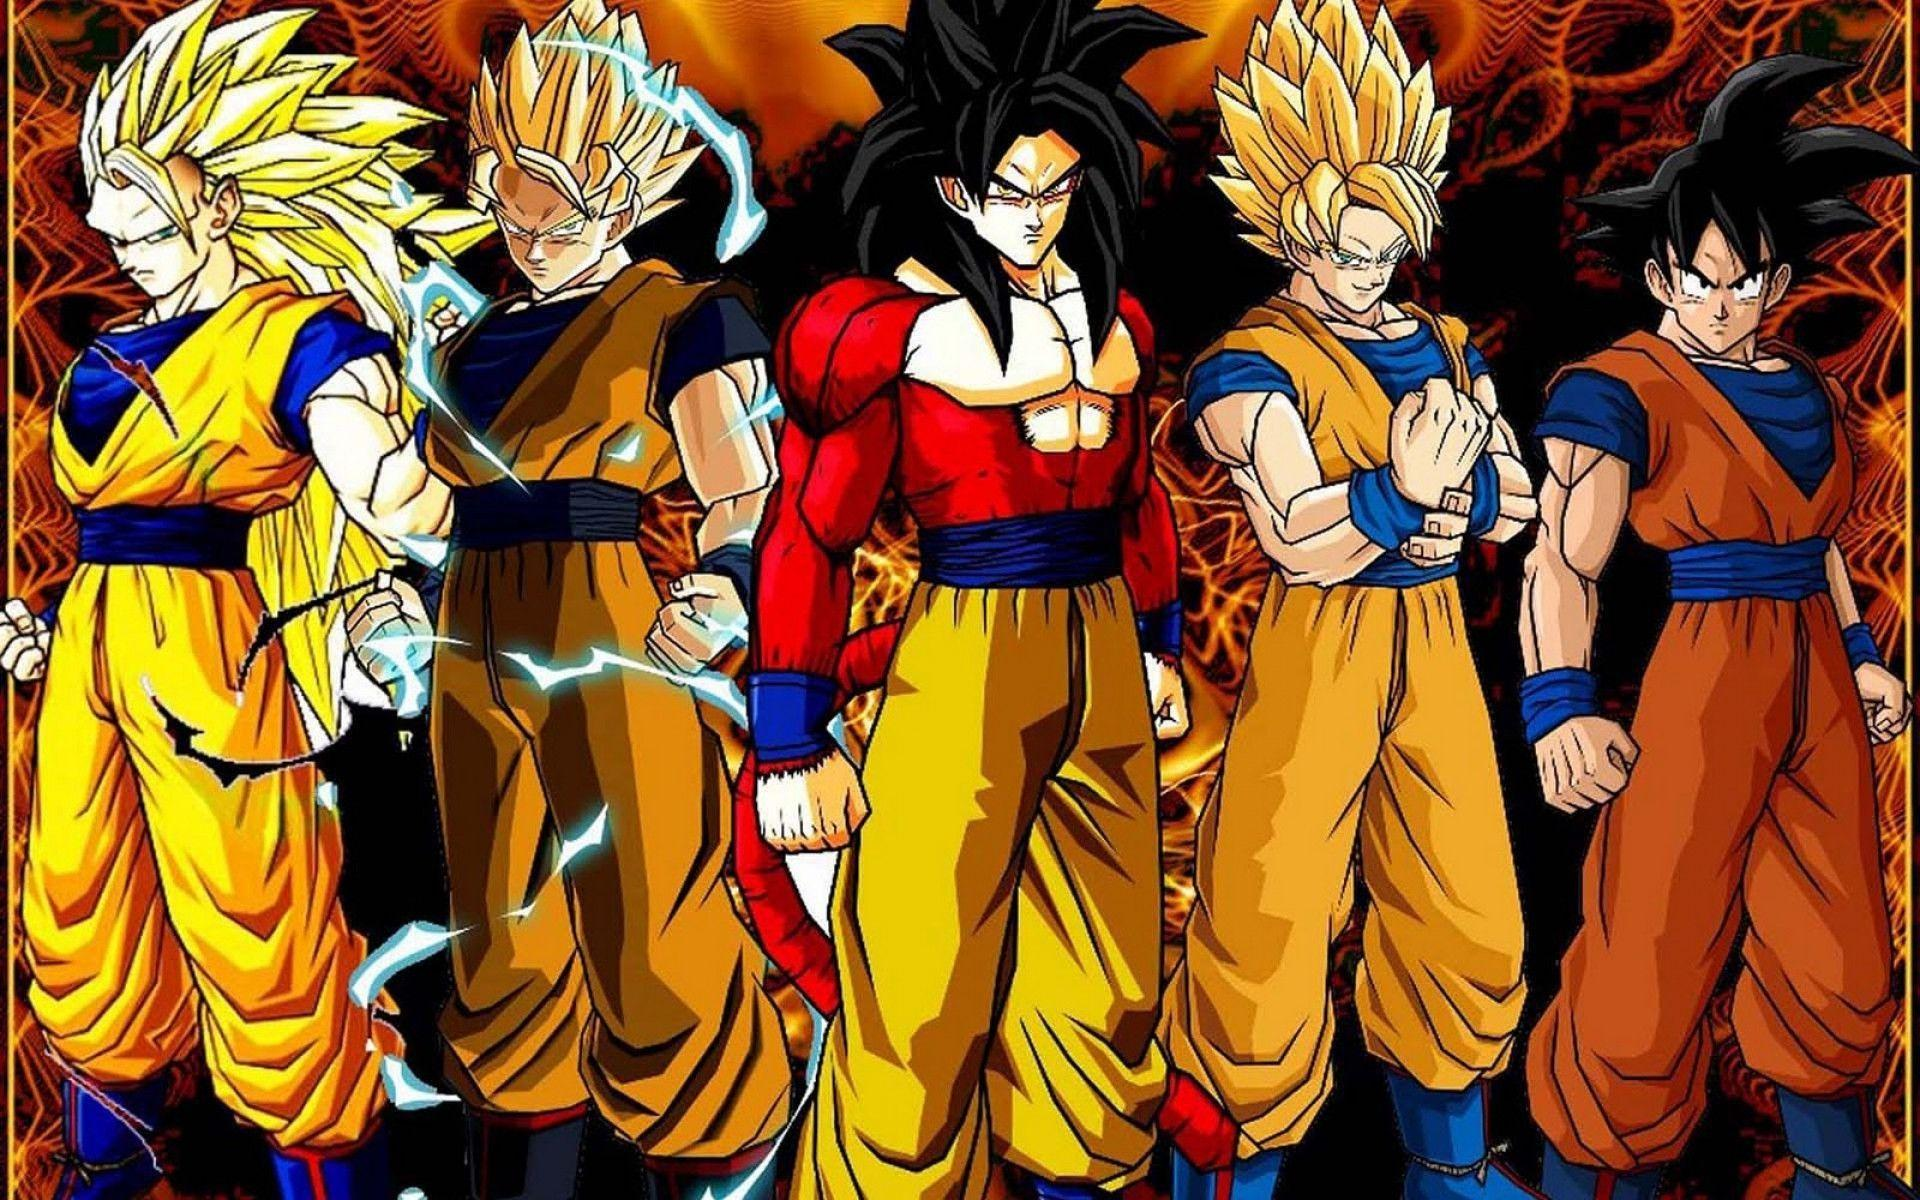 Wallpapers Keren Dragon Ball Gt Hd Desktop 9 HD Wallpapers